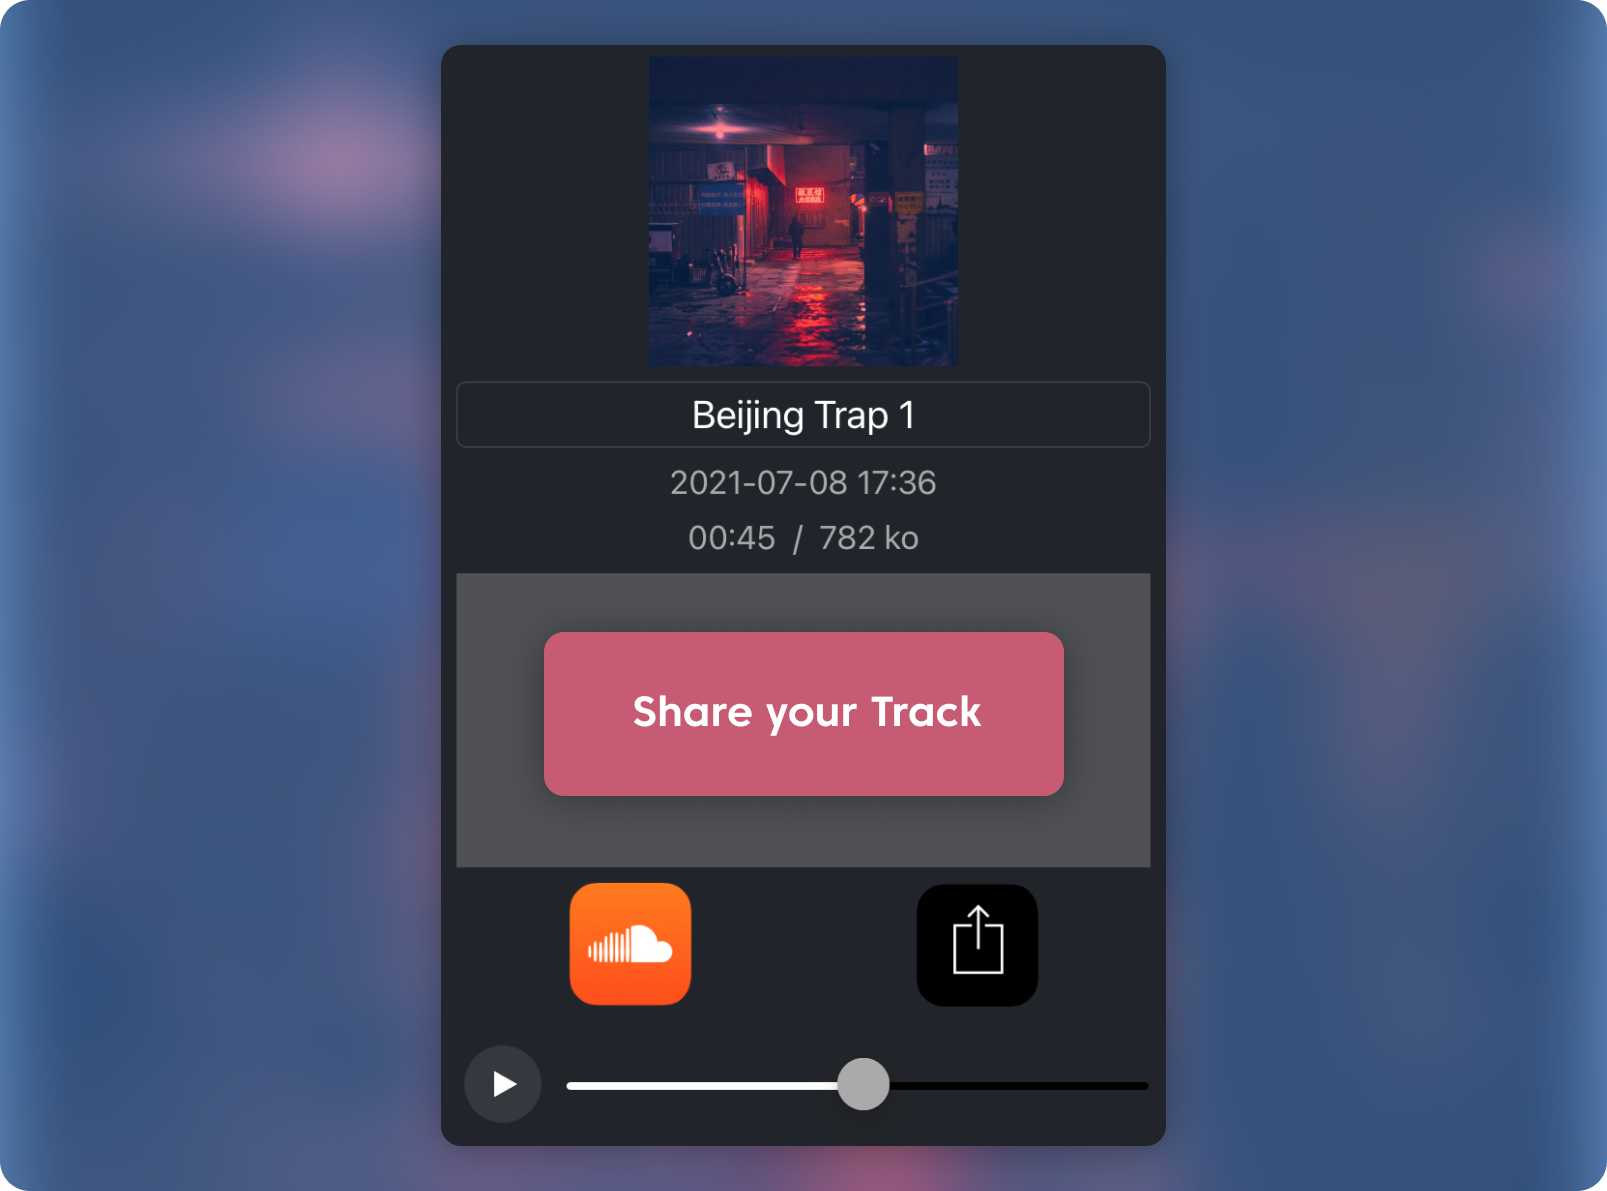 Beat Snap's share your track button